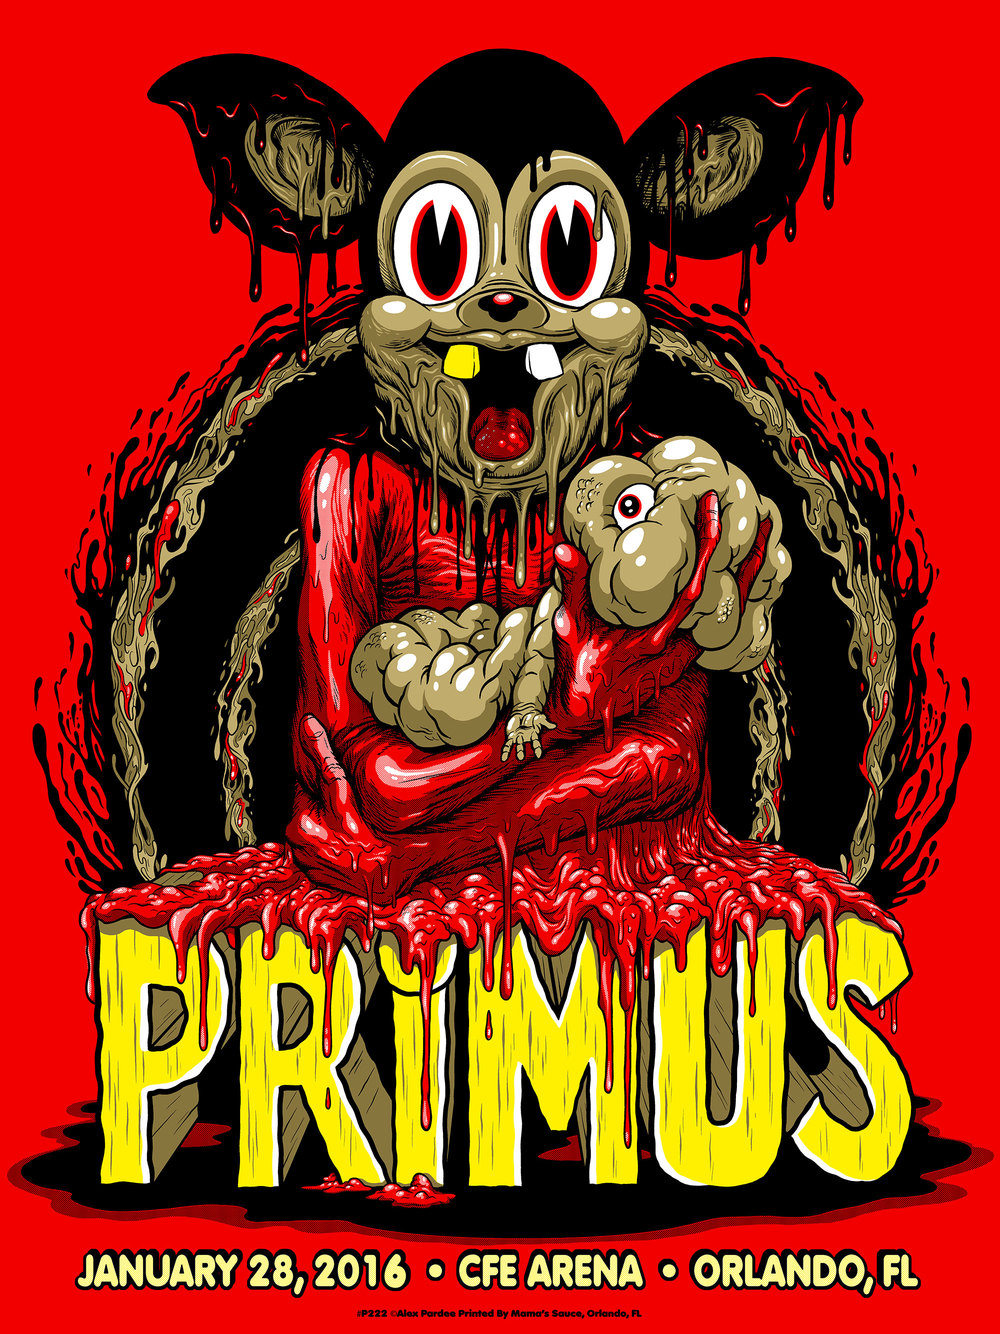 Primus_Jan2016_Separated_Final_Fixed.jpg